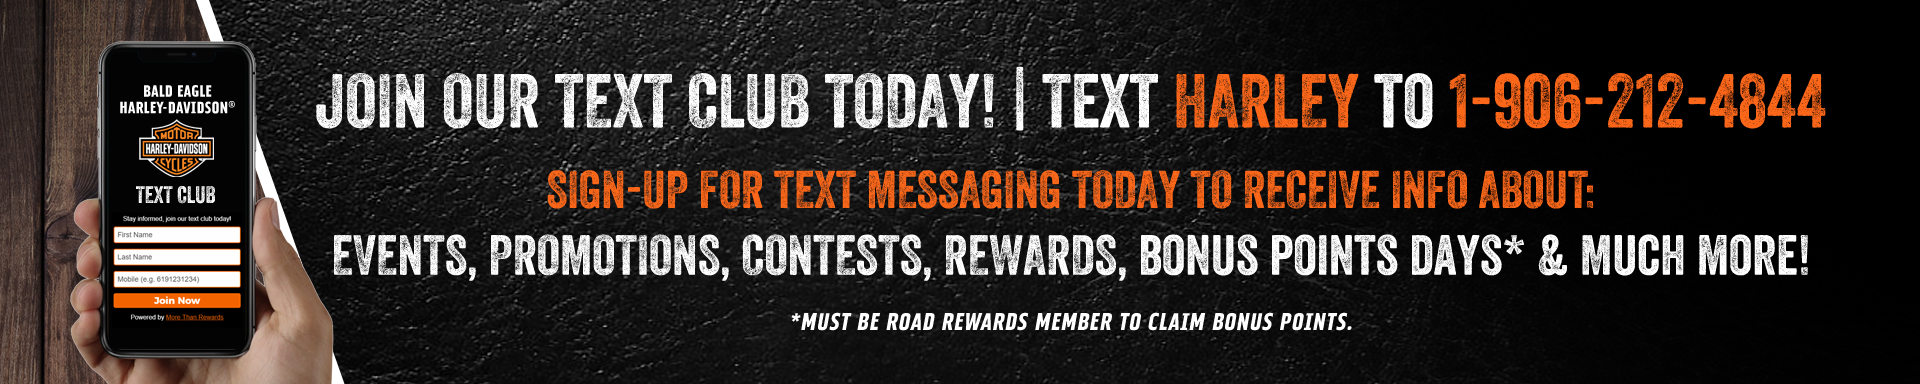 JOIN OUR TEXT CLUB AND & GET INSTANT EVENT UPDATES